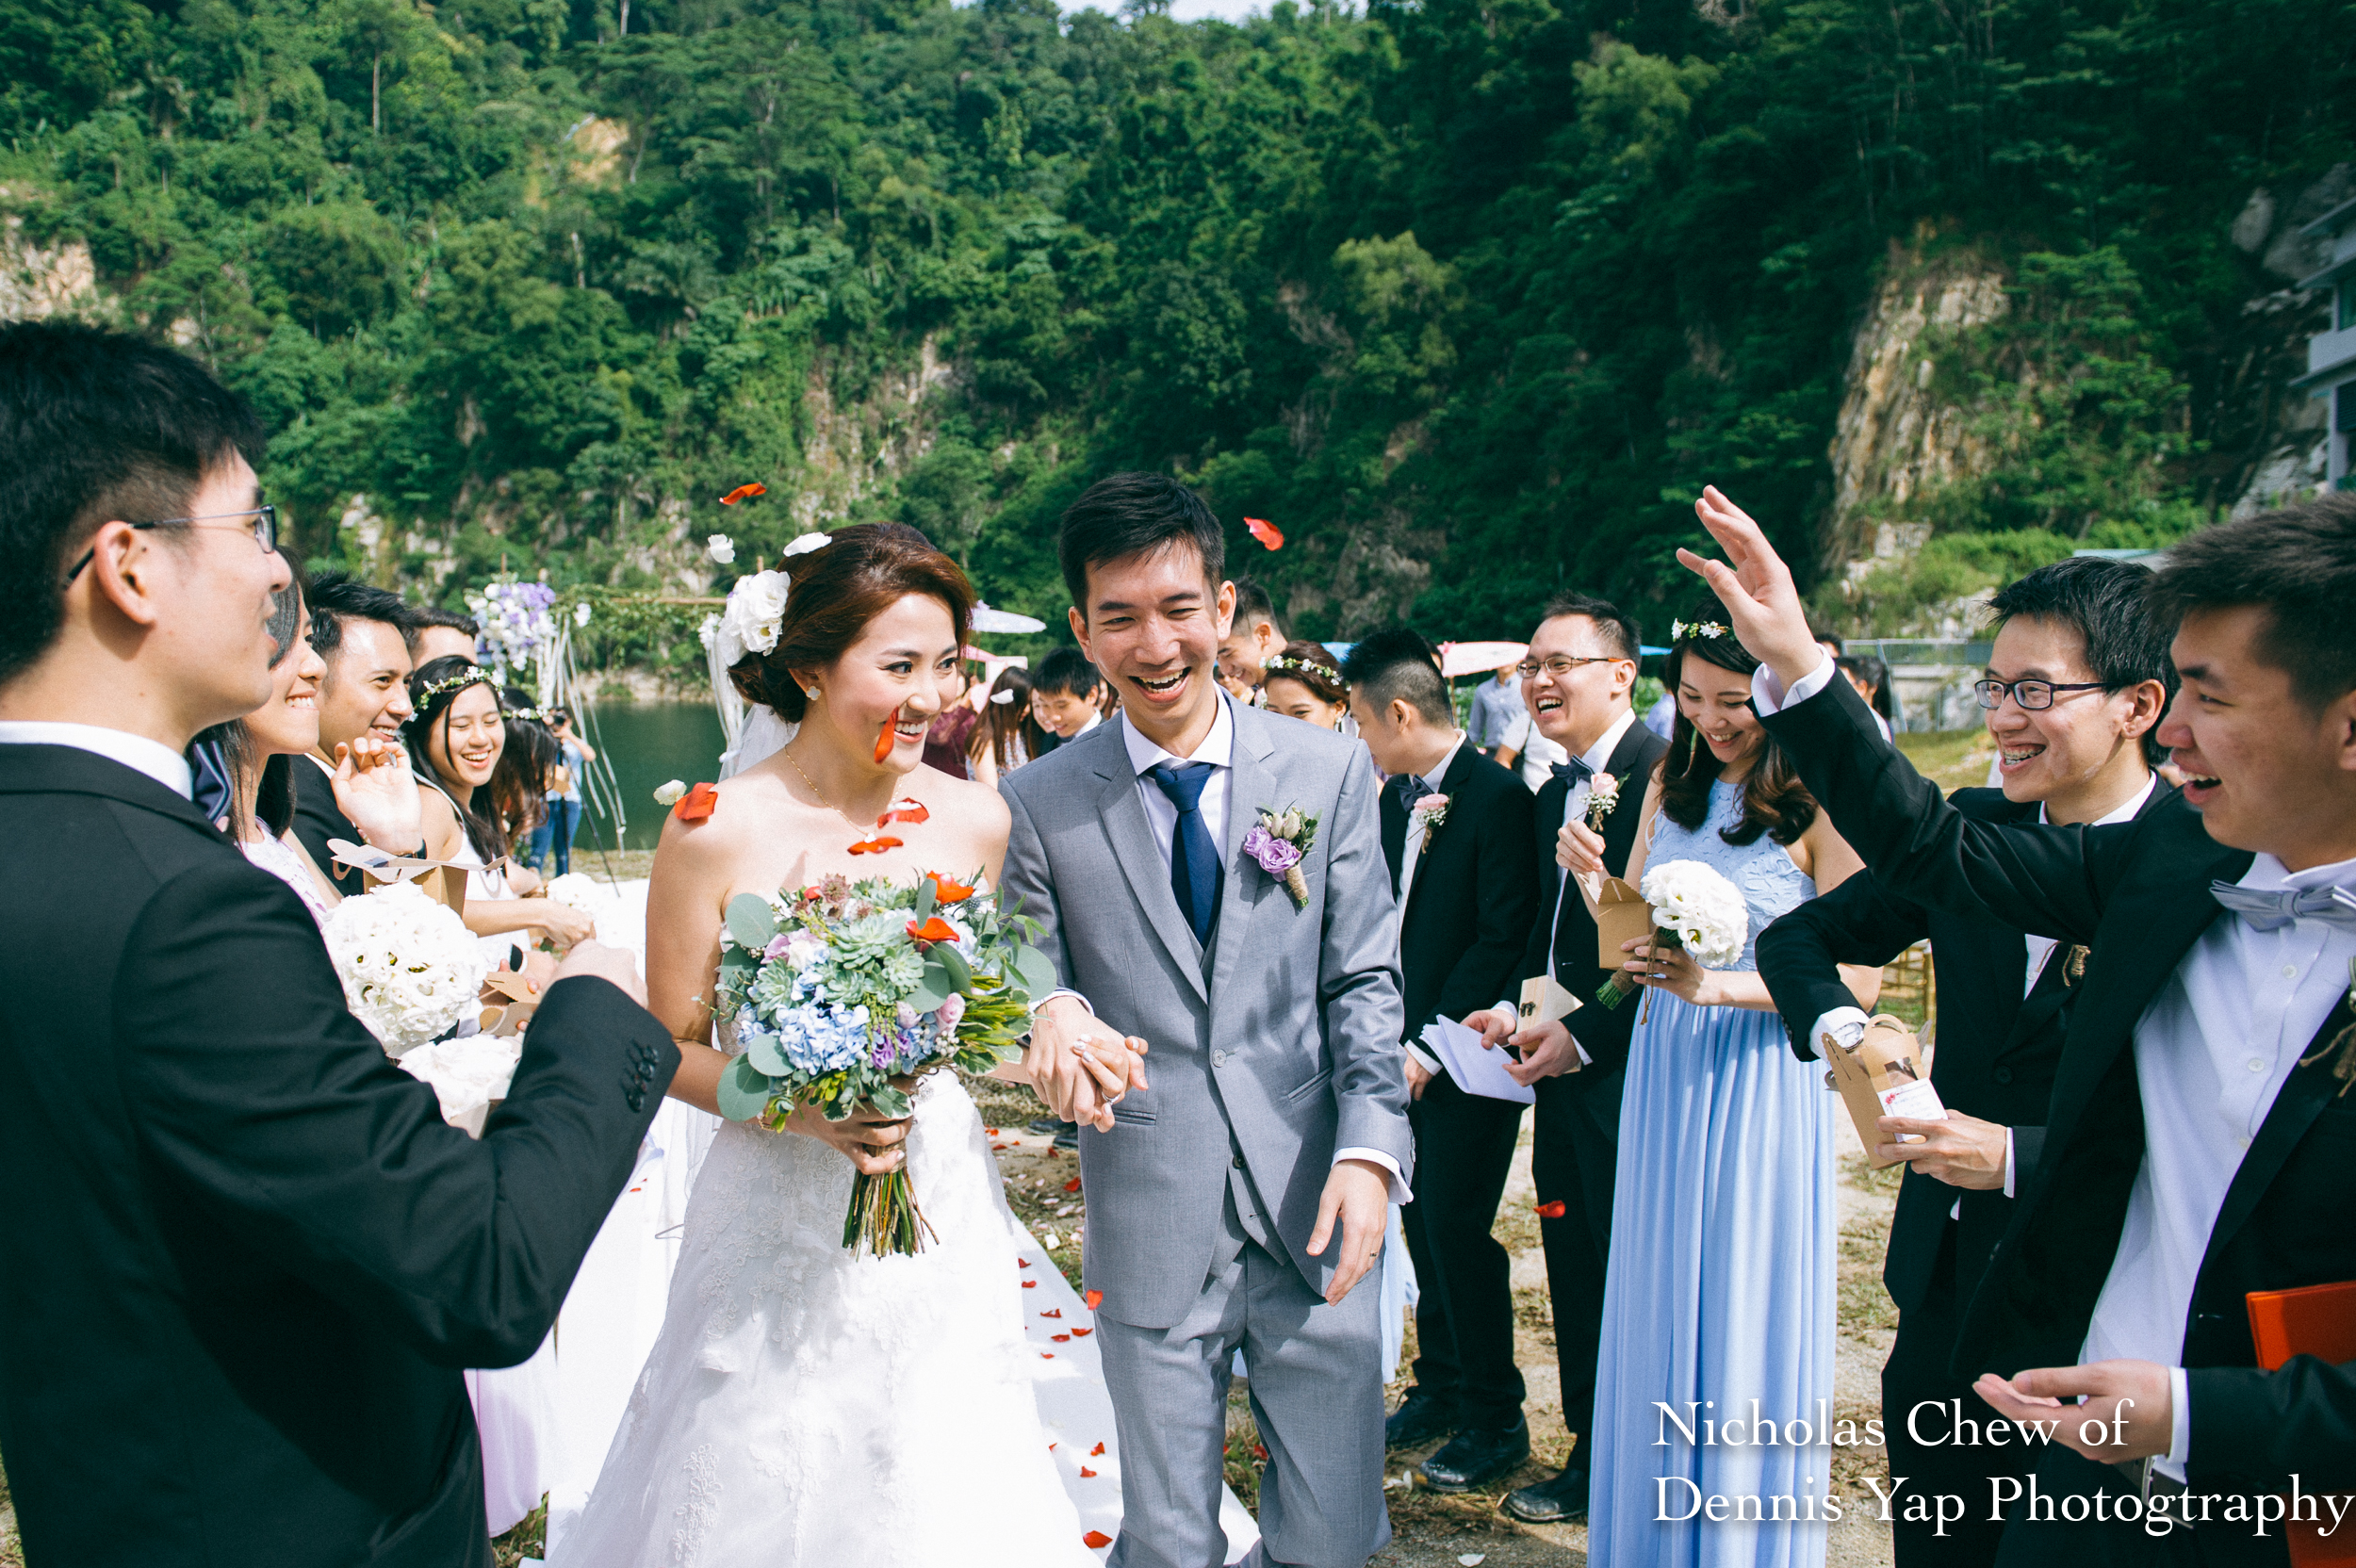 Nicholas Chew profile wedding natural candid moments chinese traditional church garden of dennis yap photography009Nicholas Profile-7.jpg